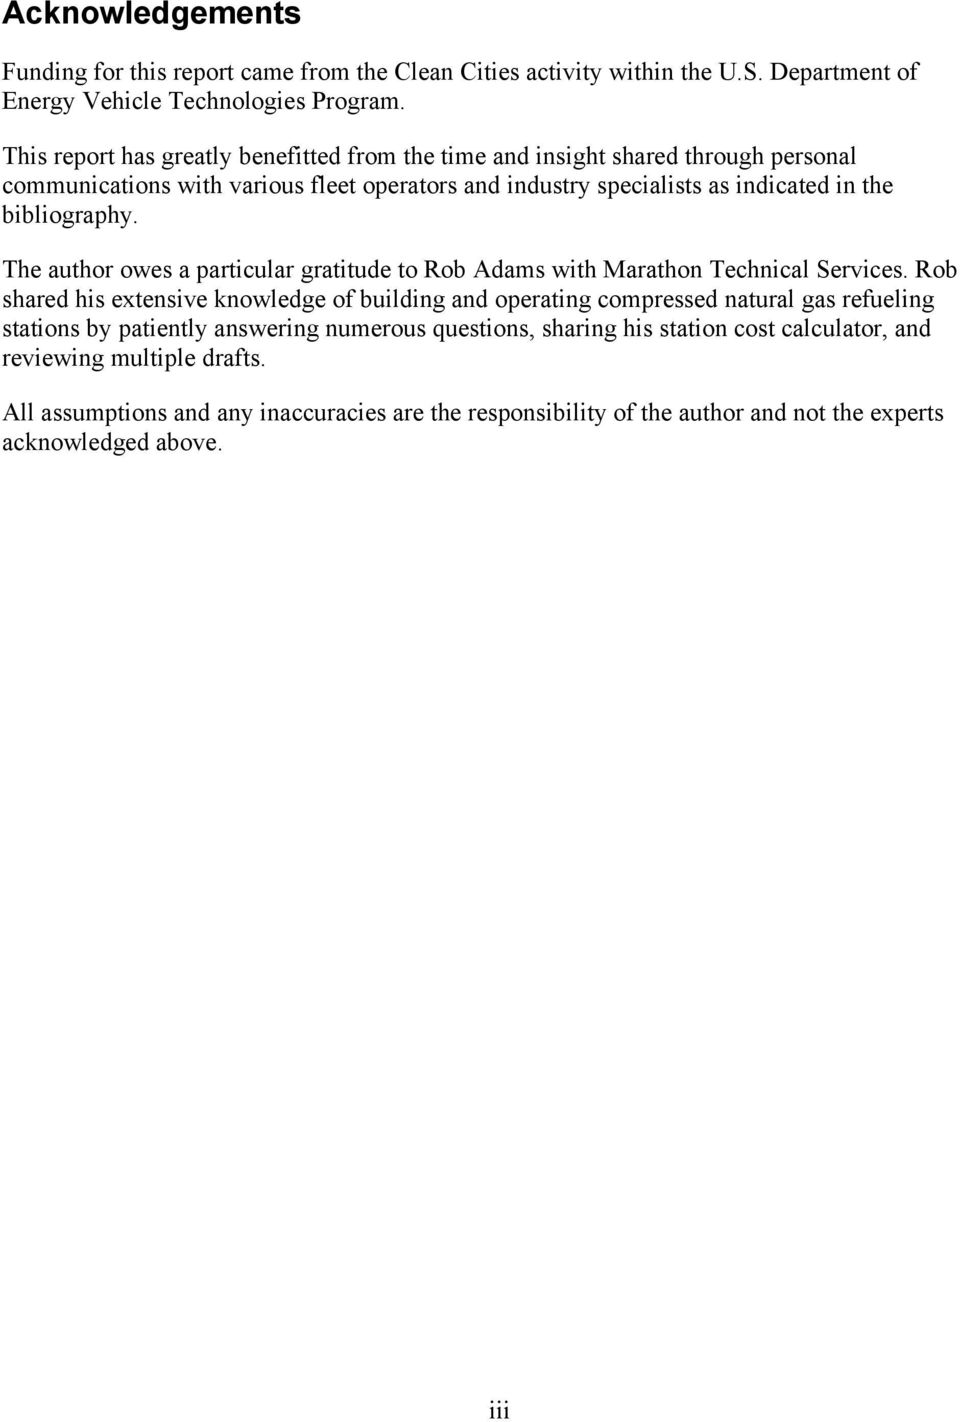 The author owes a particular gratitude to Rob Adams with Marathon Technical Services.